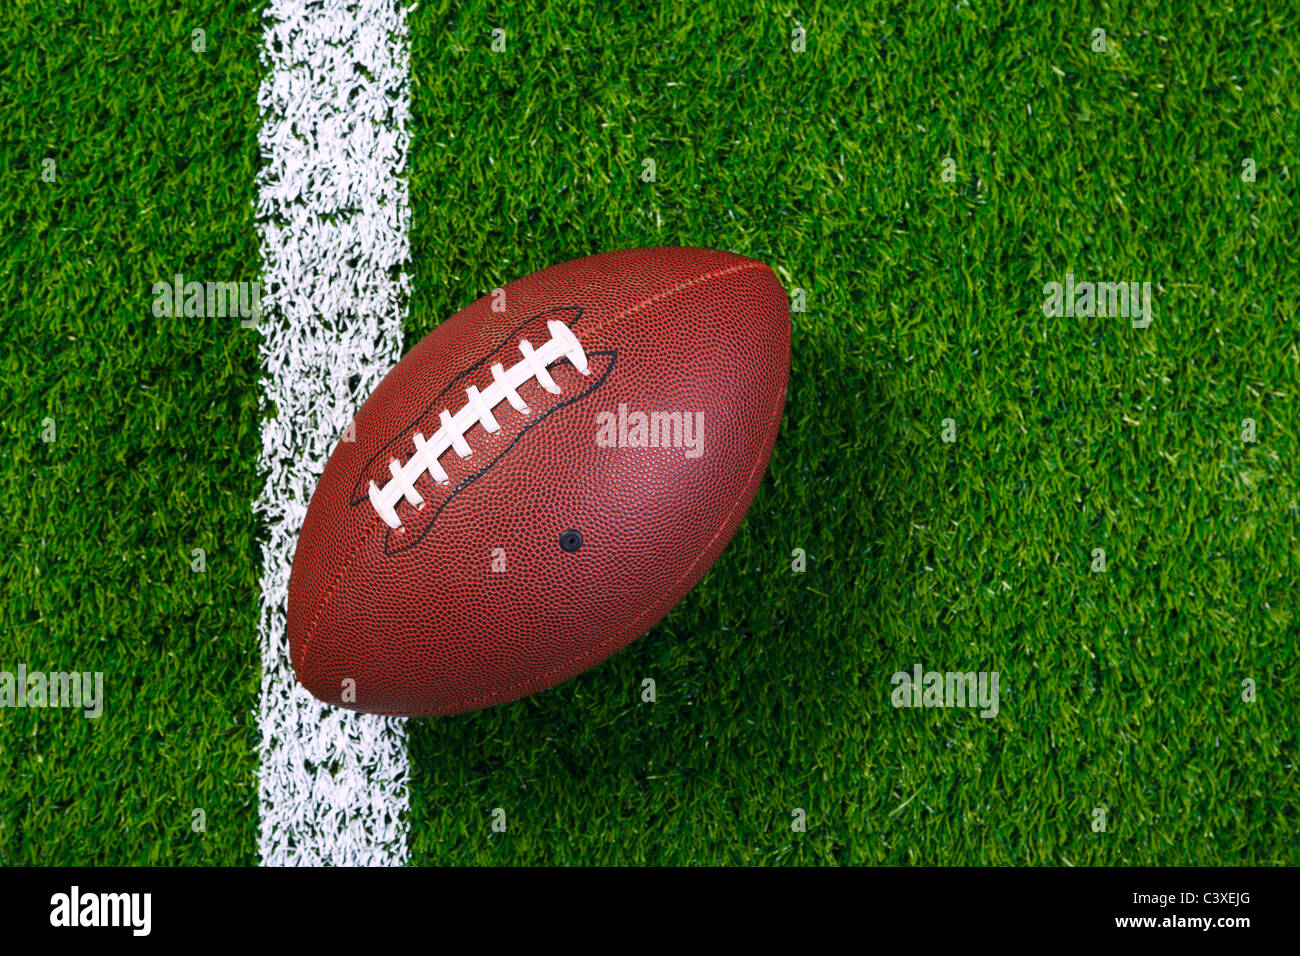 Photo of an American football on a grass next to the touchline, shot from above. - Stock Image